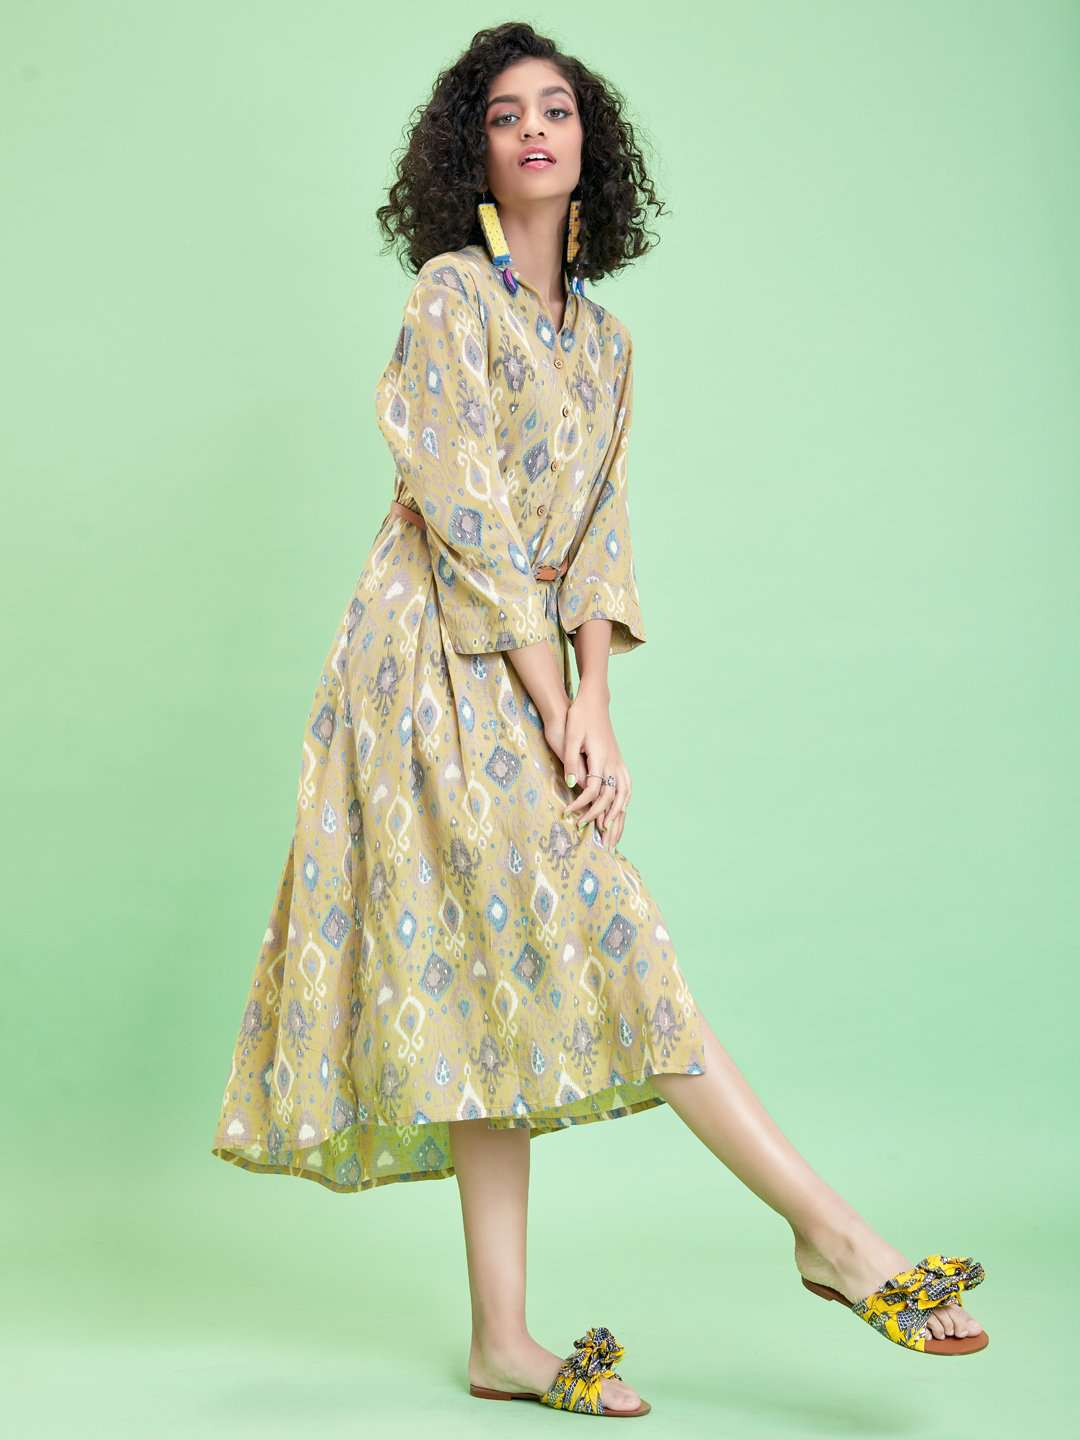 Green Ikkat Printed Rayon Liva Dress